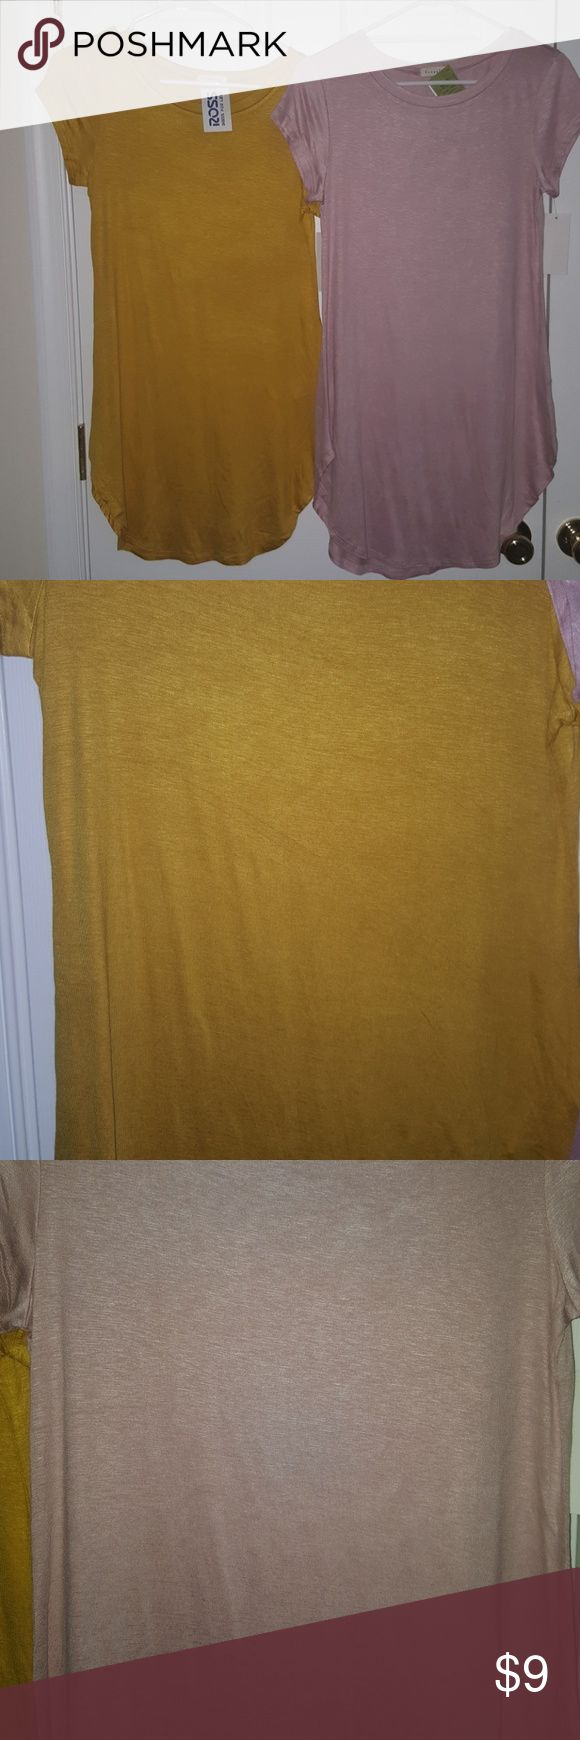 NWT, Occasion T-SHIRT DRESS BOTH SHIRTS FOR SALE IN ONE PACKAGE NWT, Occasion T-SHIRT KNIT DRESS Size Juniors Large Colors: Rose Gold and Gold/Yellow/Orange  Smoke free and Pet free home!! Occasion Tops